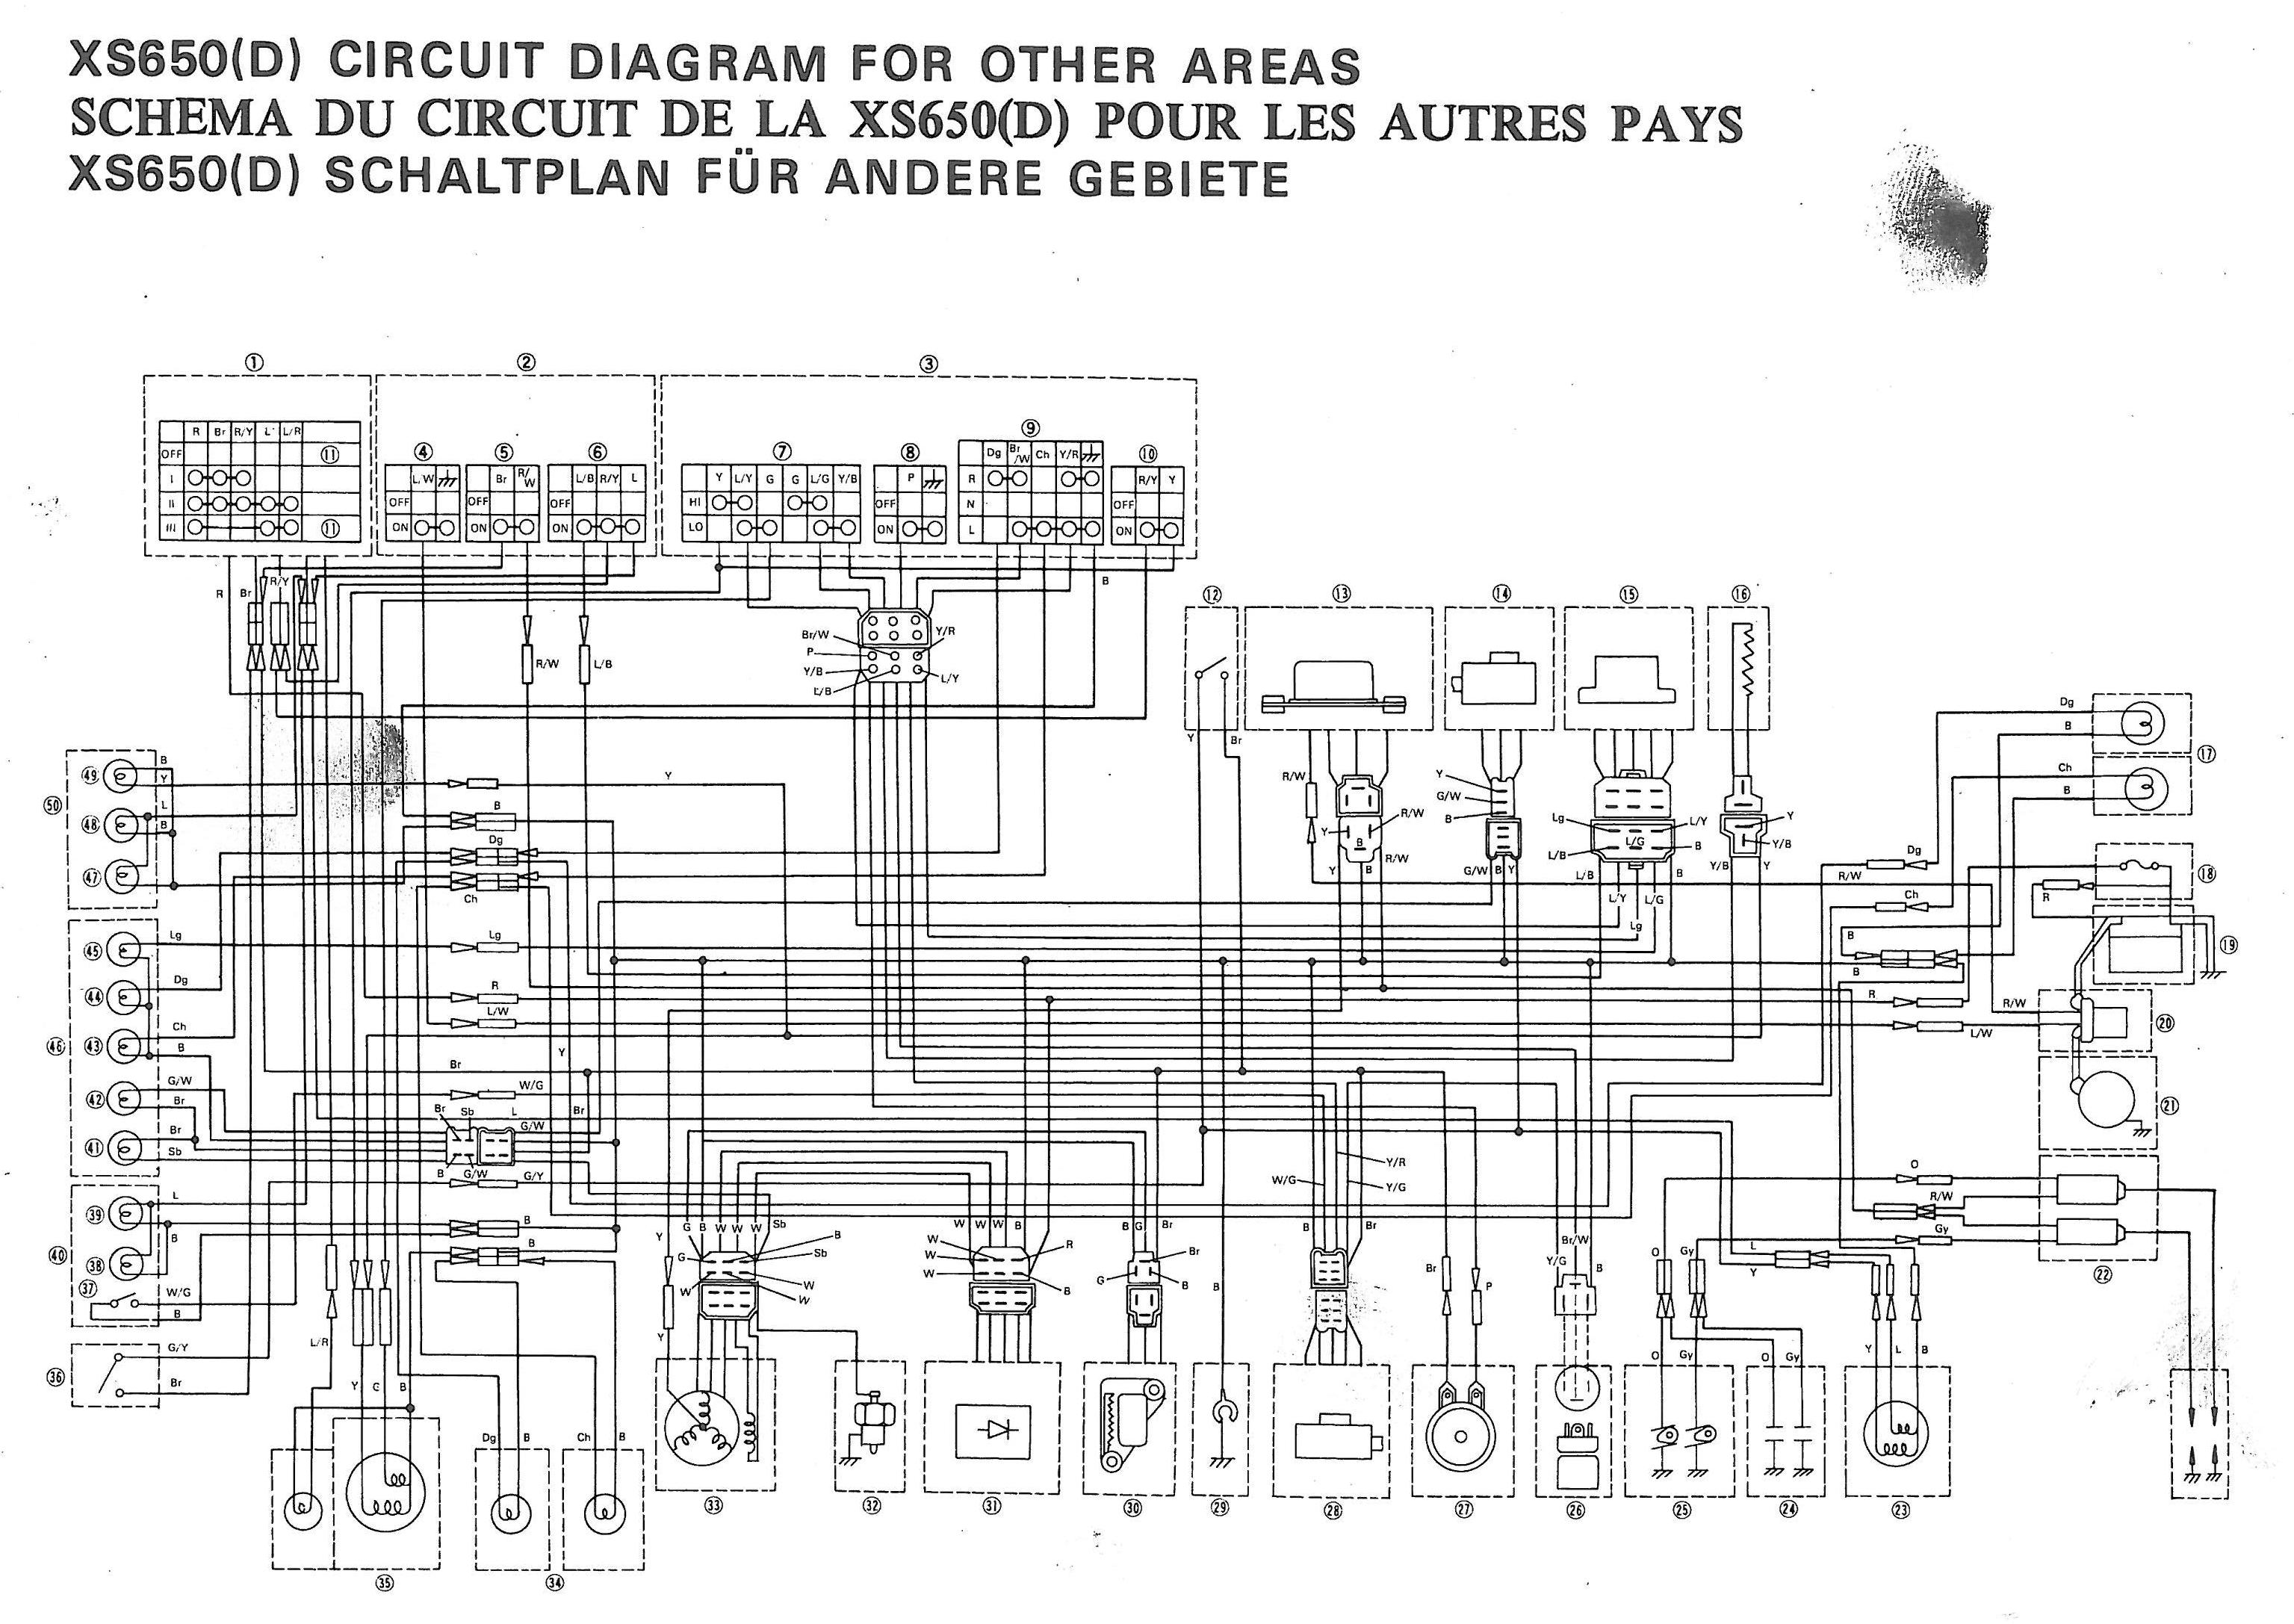 yamaha xs650 wiring diagram 1965 mustang ignition coil 77 xs d thexscafe